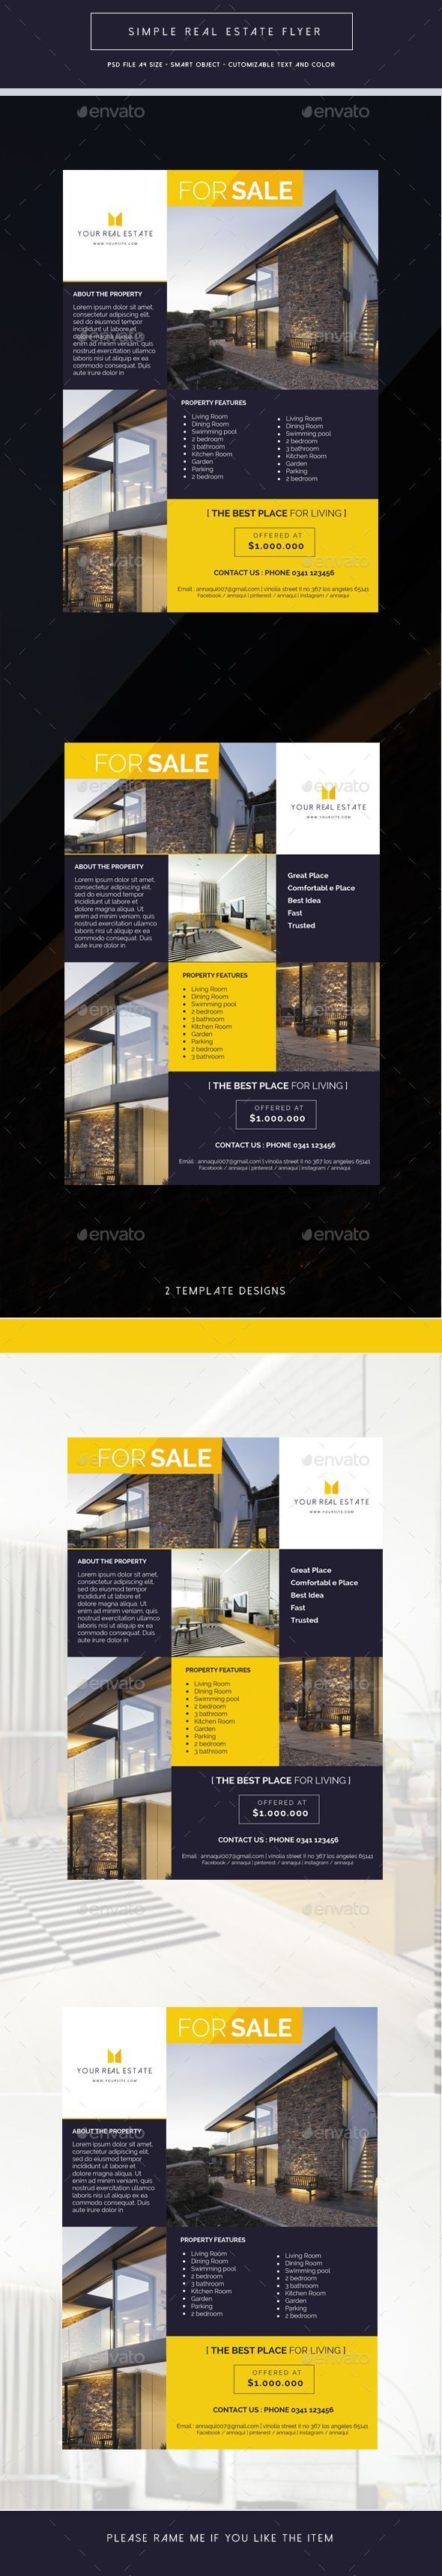 Simple #Real Estate Flyer - Corporate Business Cards Download here: https://graphicriver.net/item/simple-real-estate-flyer/17226106?ref=alena994